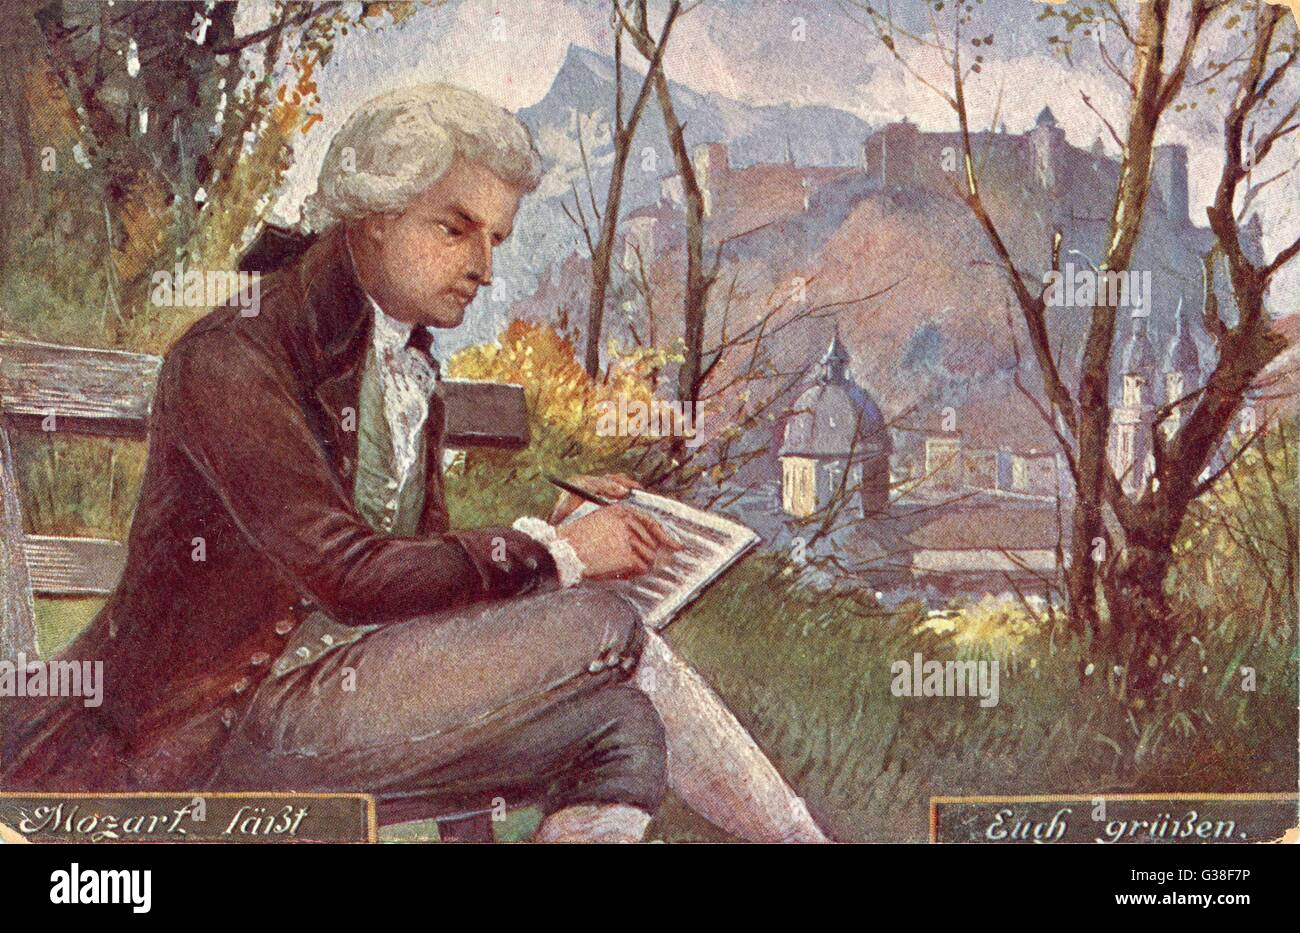 WOLFGANG AMADEUS MOZART  the Austrian composer at work  in Salzburg       Date: 1756 - 1791 - Stock Image